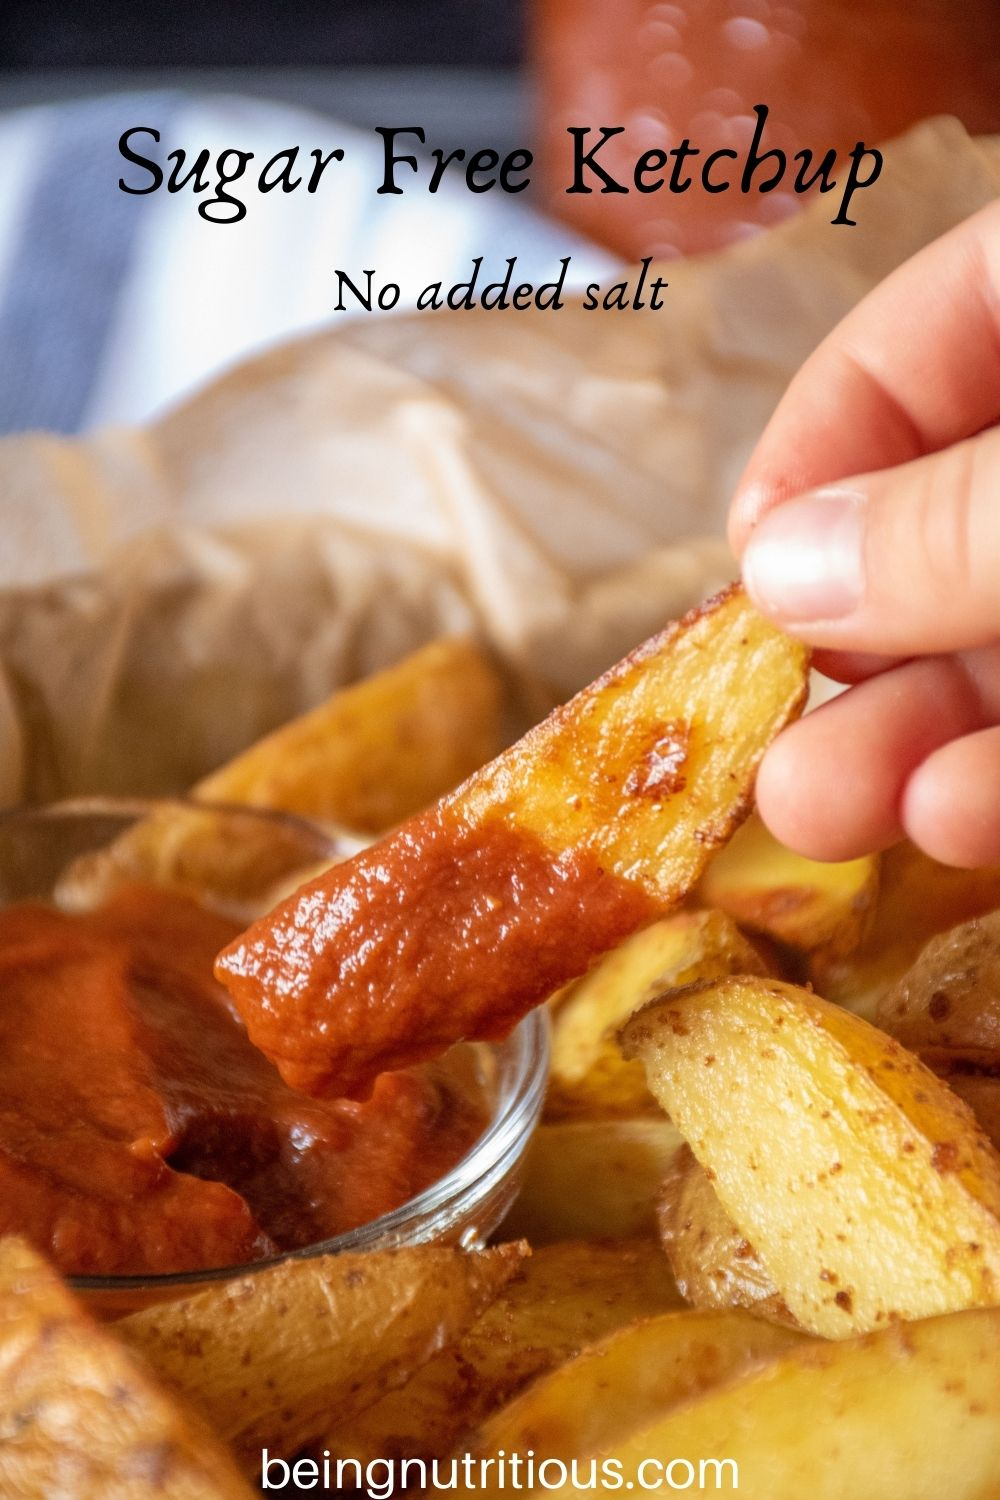 Hand holding a potato wedge, dipped in ketchup. Text overlay: Sugar Free Ketchup; No added salt.